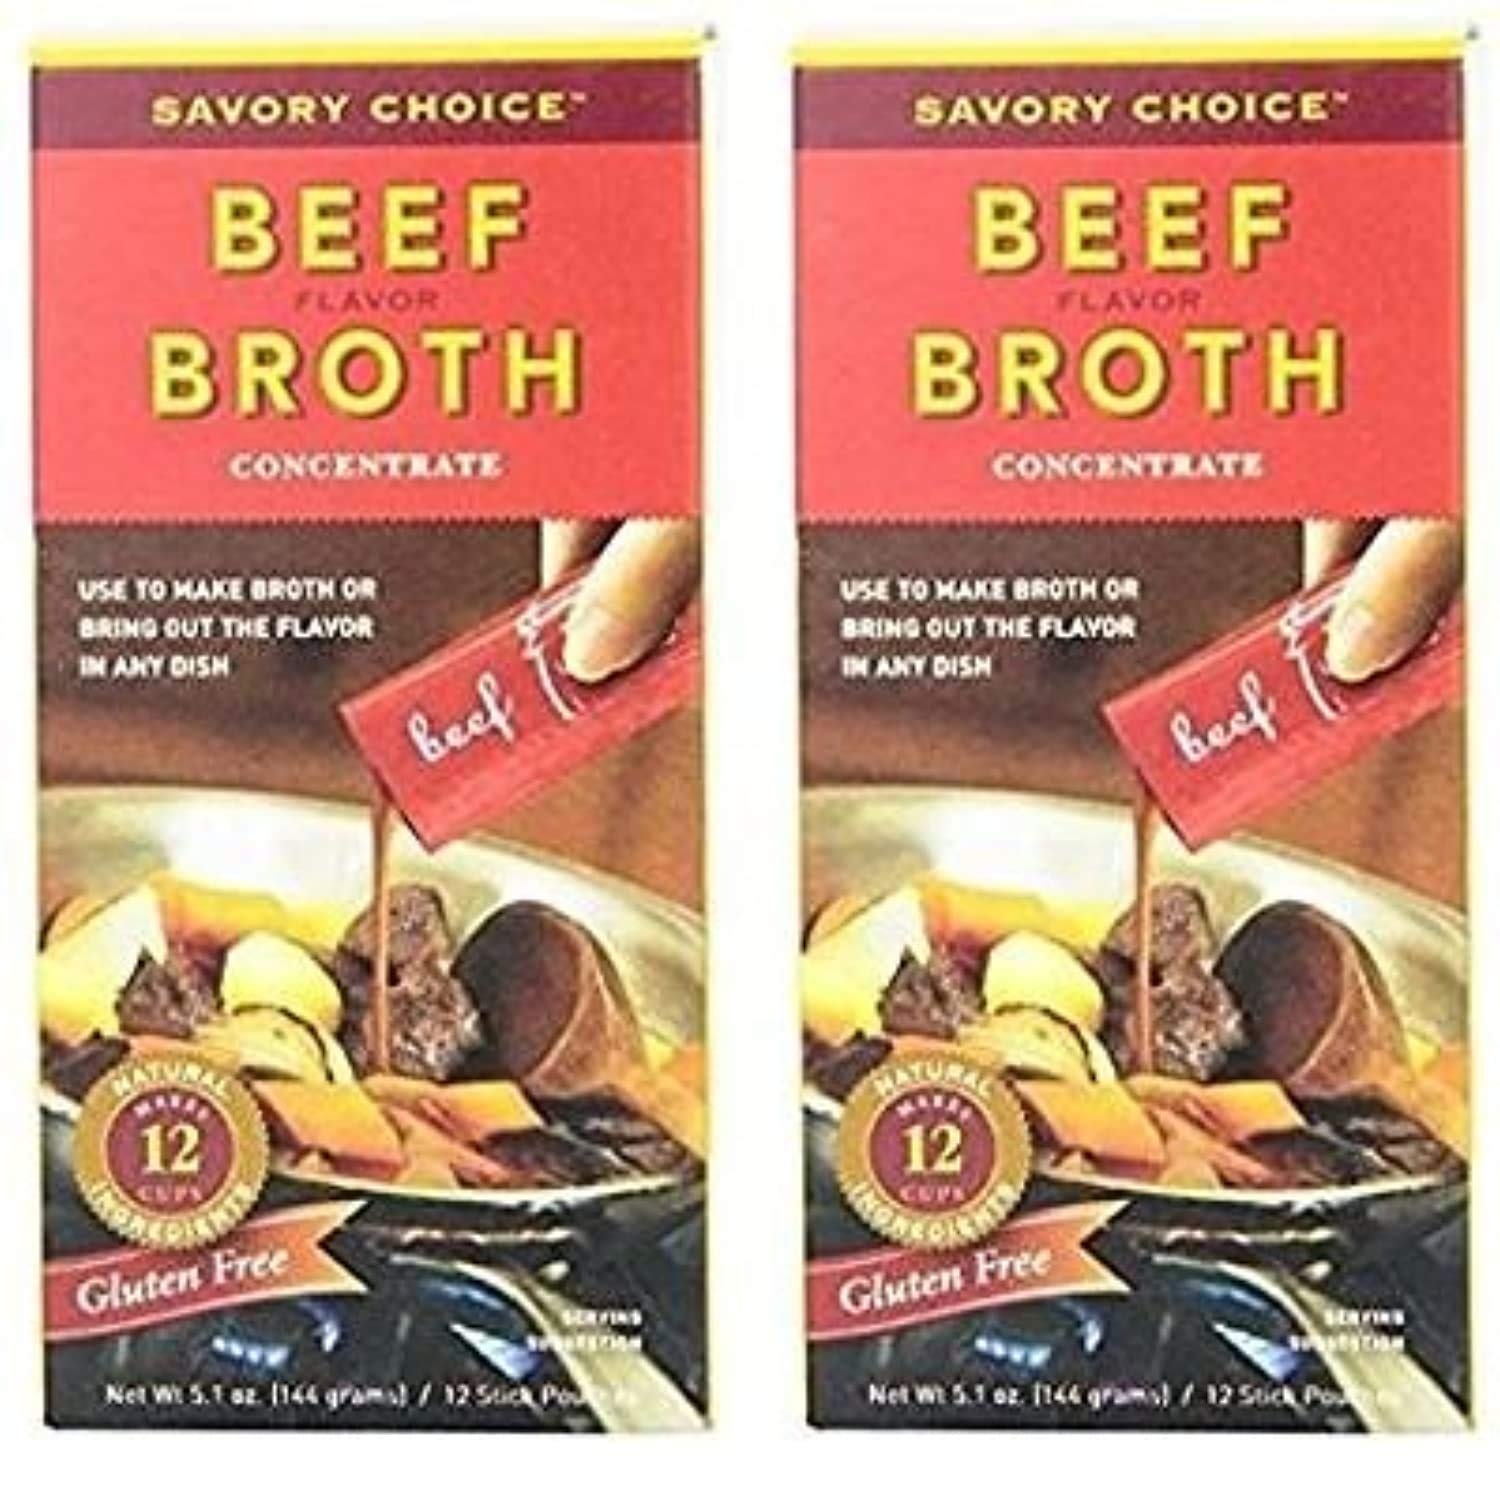 Savory Choice Liquid Beef Broth Concentrate 5.1 Ounce Box (Pack of 2)